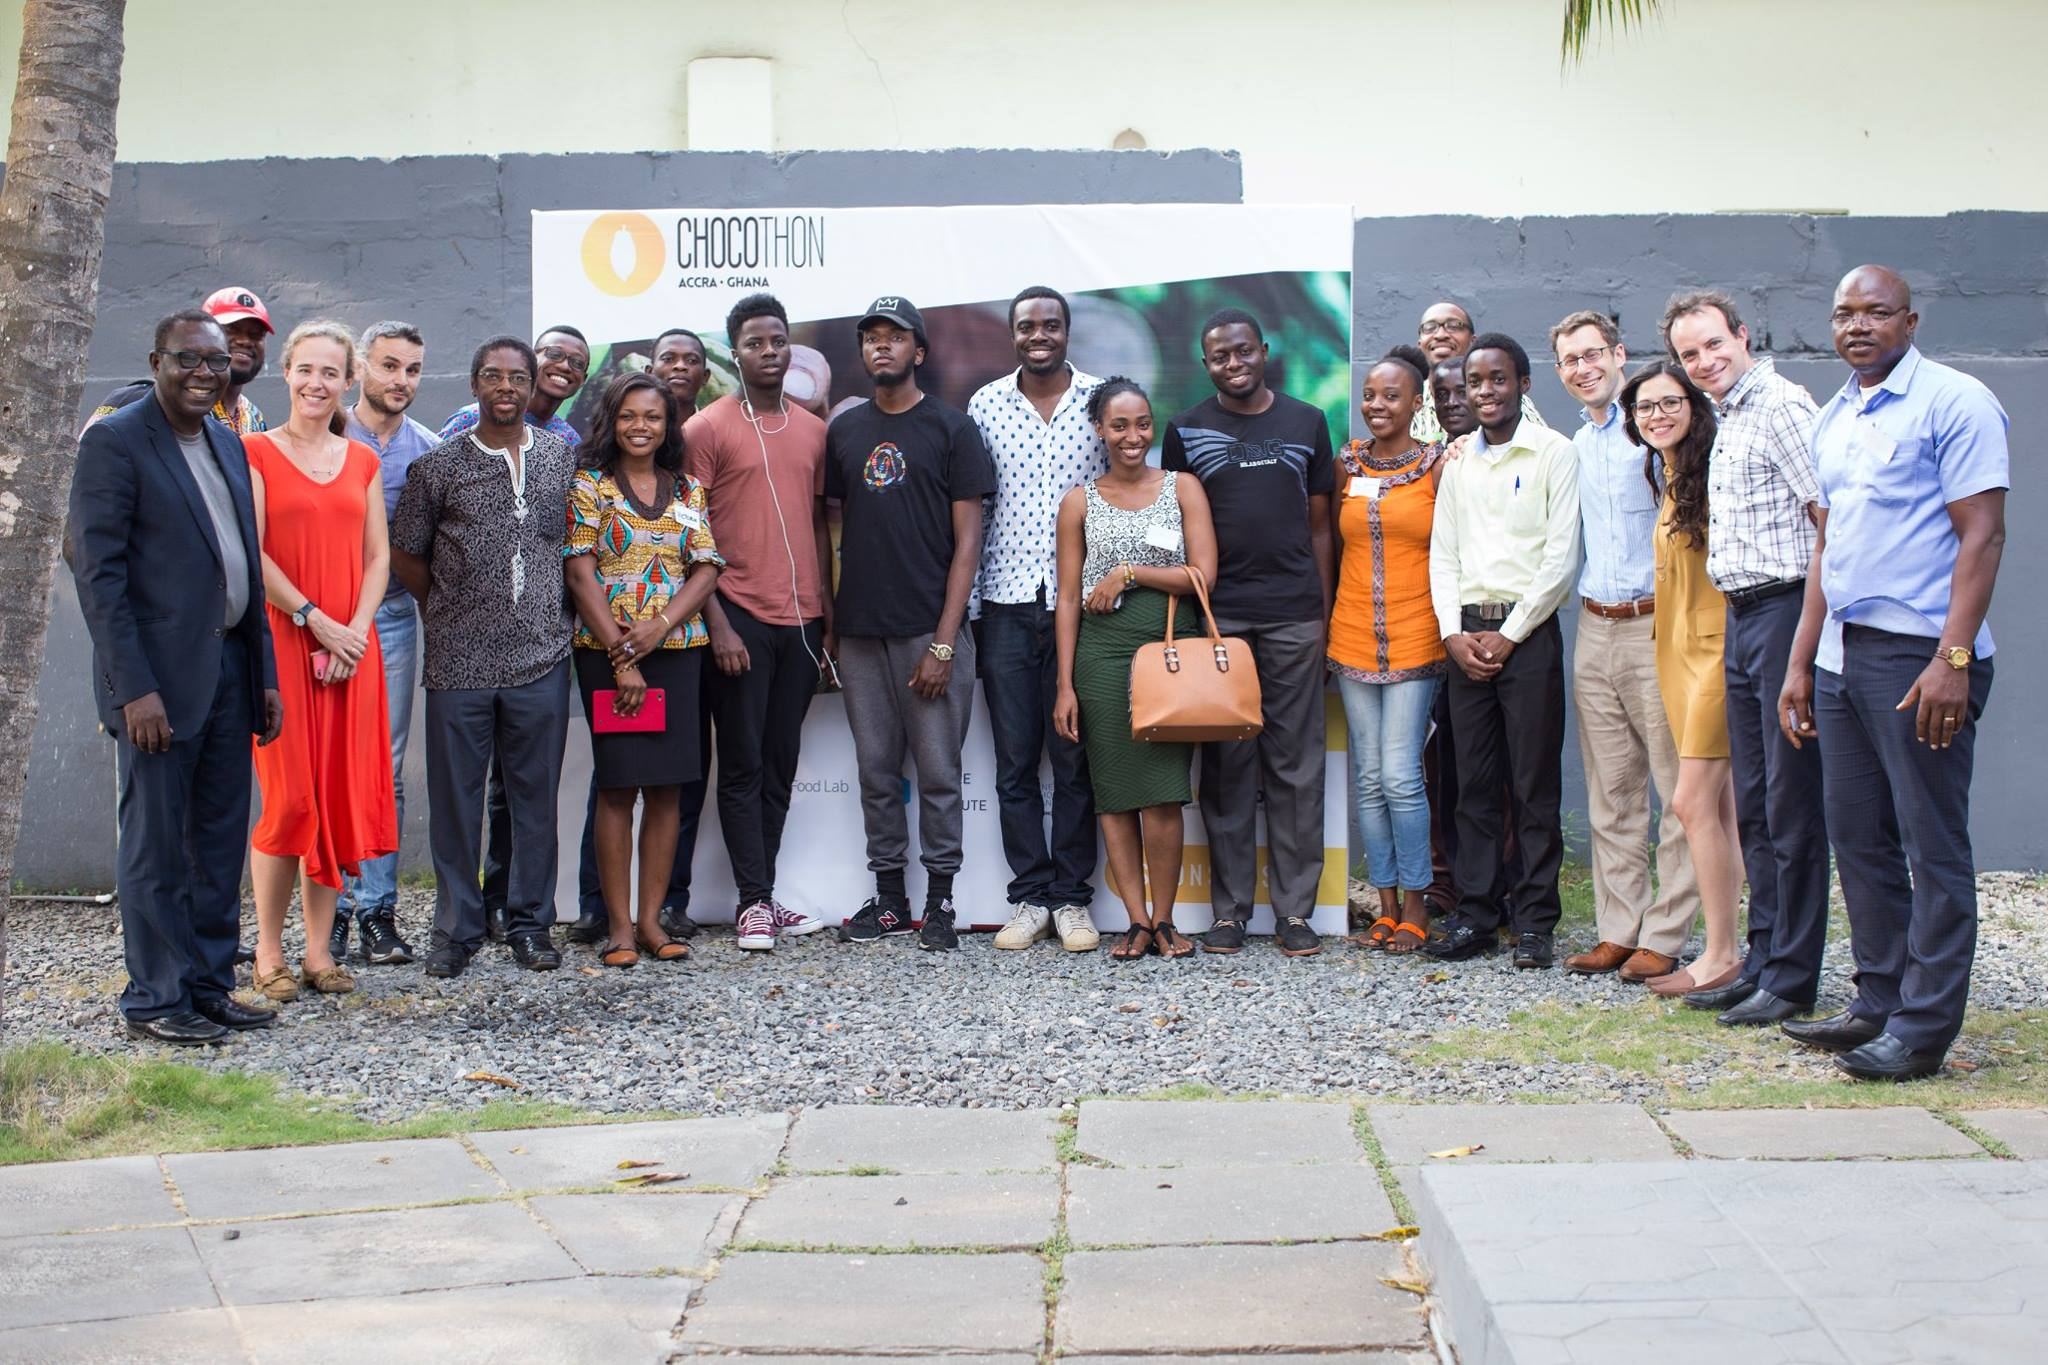 Thumbnail for Chocothon Phase I: the Hackathon Experience In Ghana!